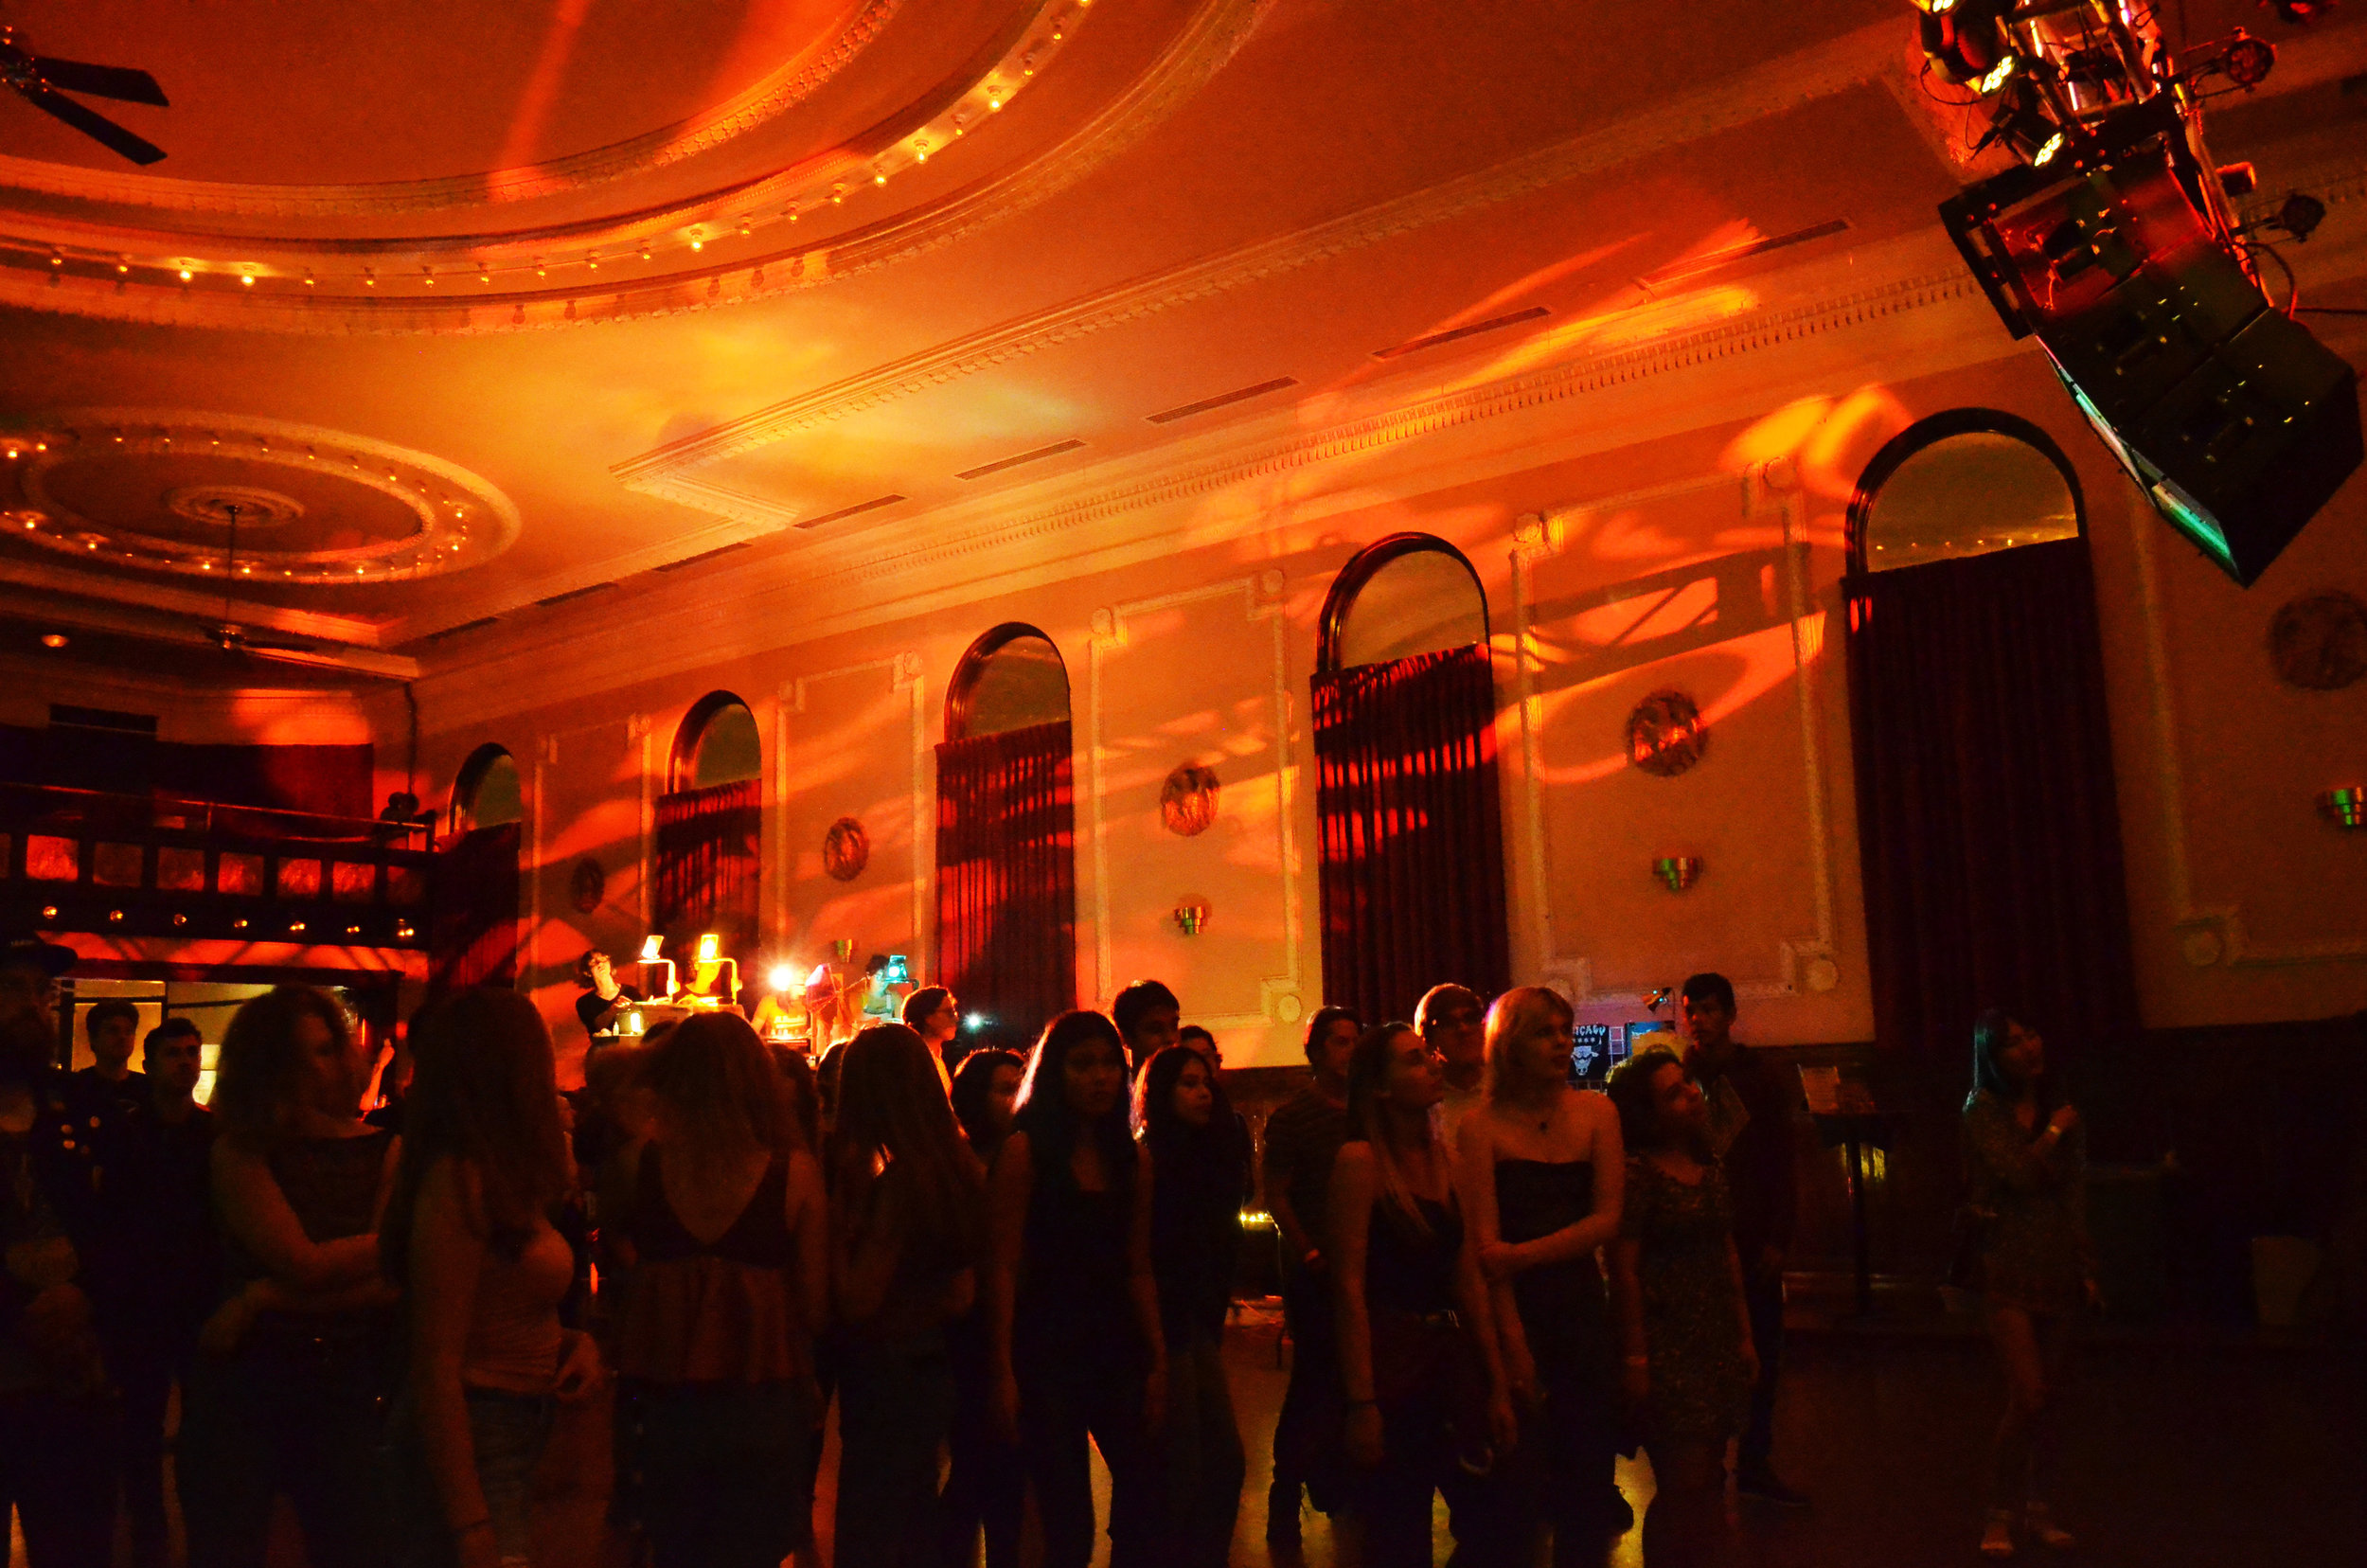 Day One of Warble Daze at the Logan Square Auditorium. Photo by Megan Stringer, co-founder and co-editor in chief.